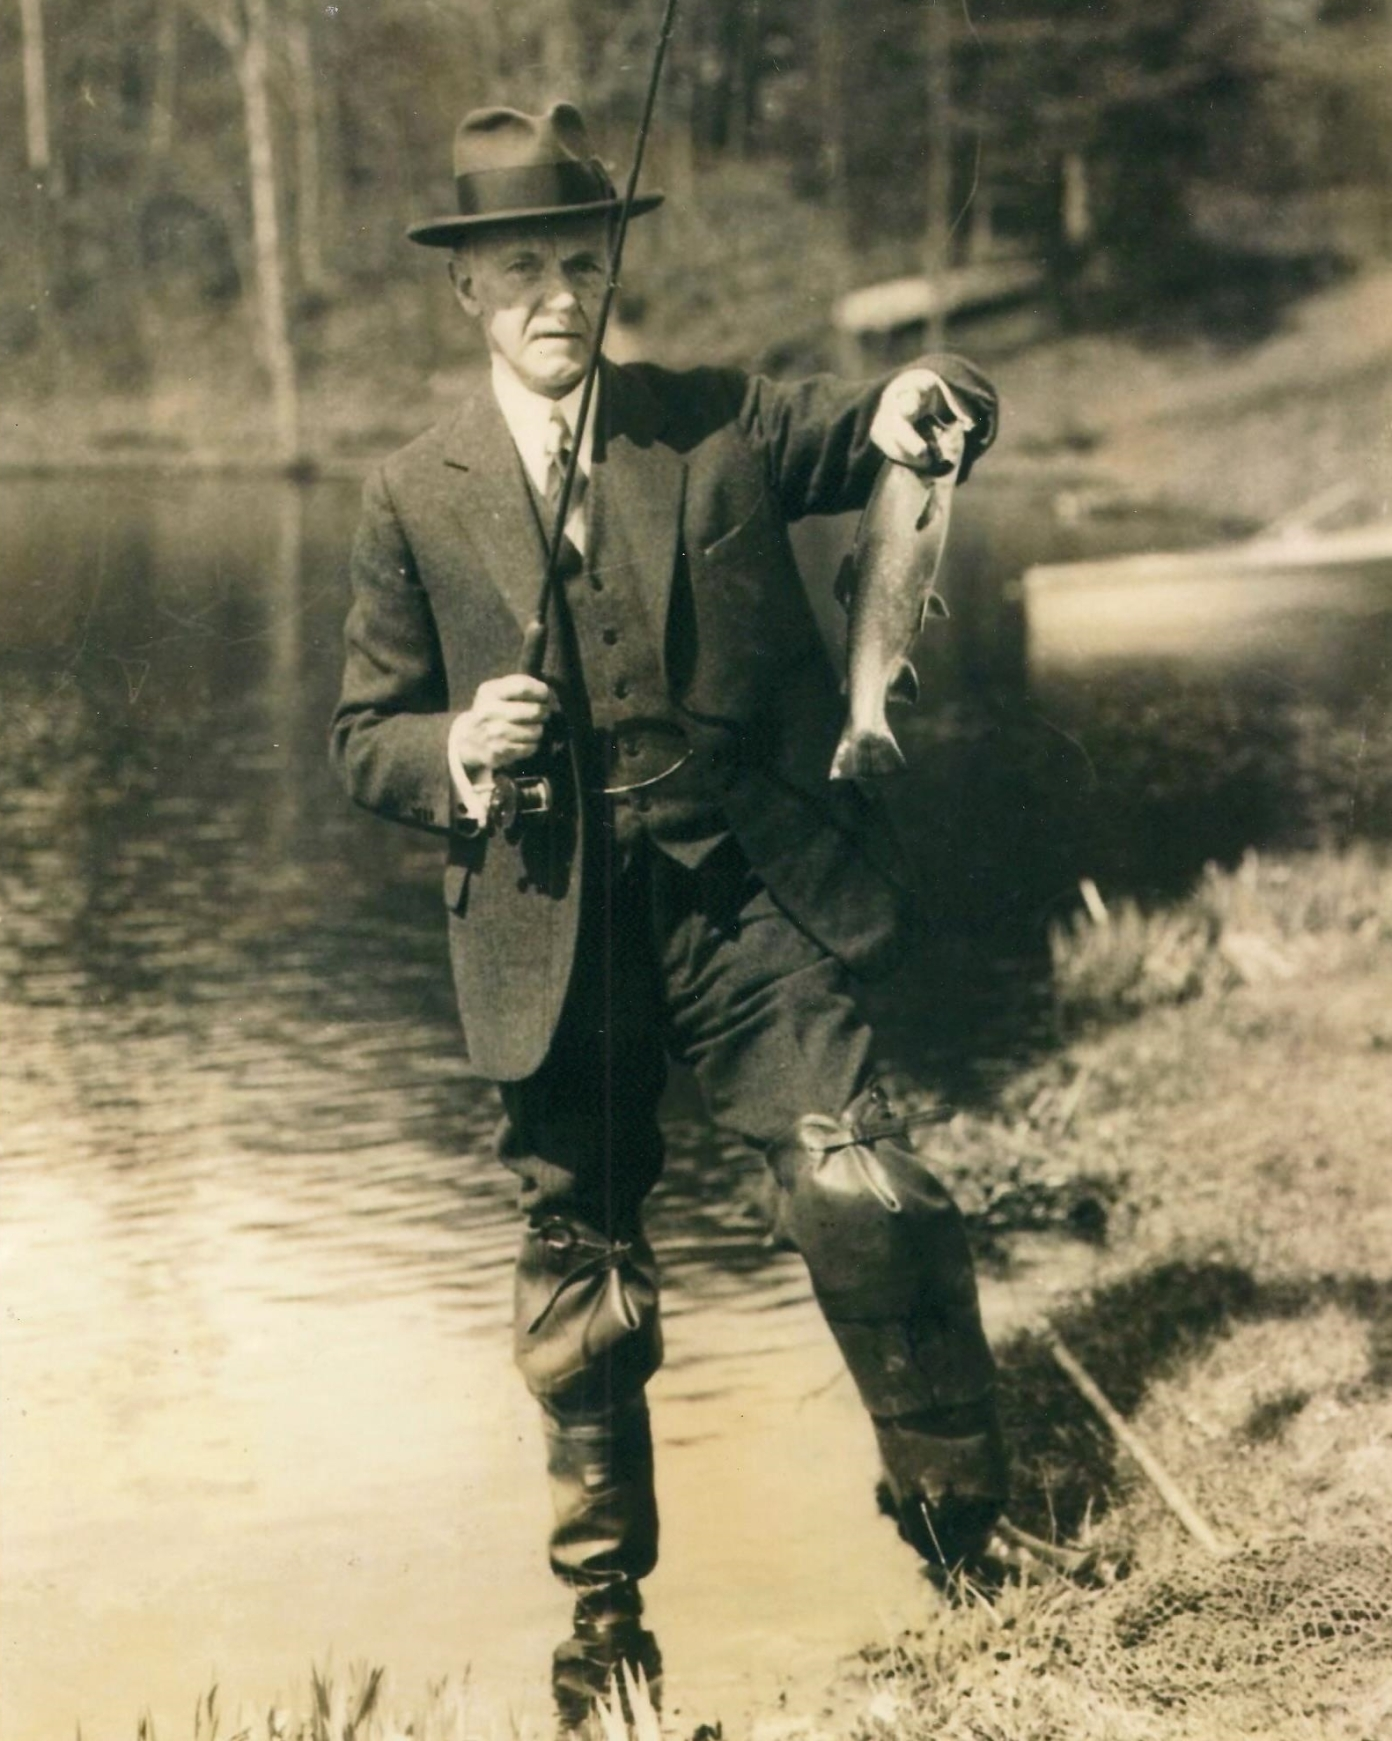 Coolidge held scrupulously to accurate fish stories. He made a point of displaying what he had caught, even documenting it for verification. Here he holds his latest catch up for visual confirmation.